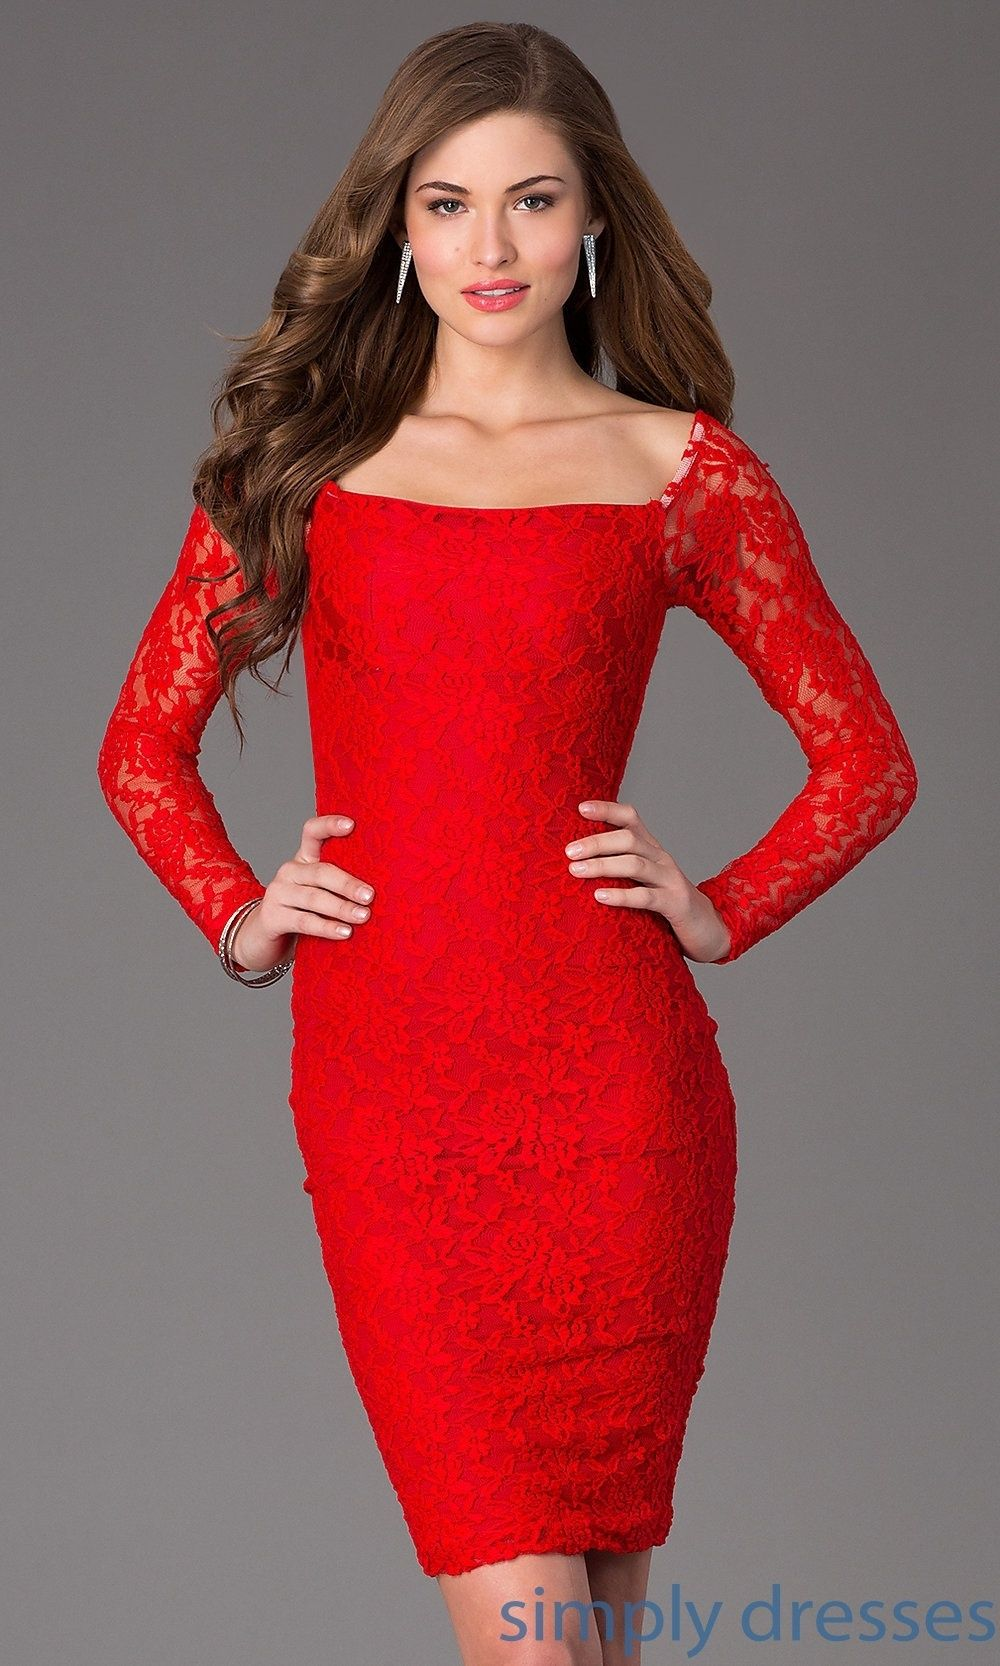 Amazing red kneelength longsleeve lace dress cocktail party dress